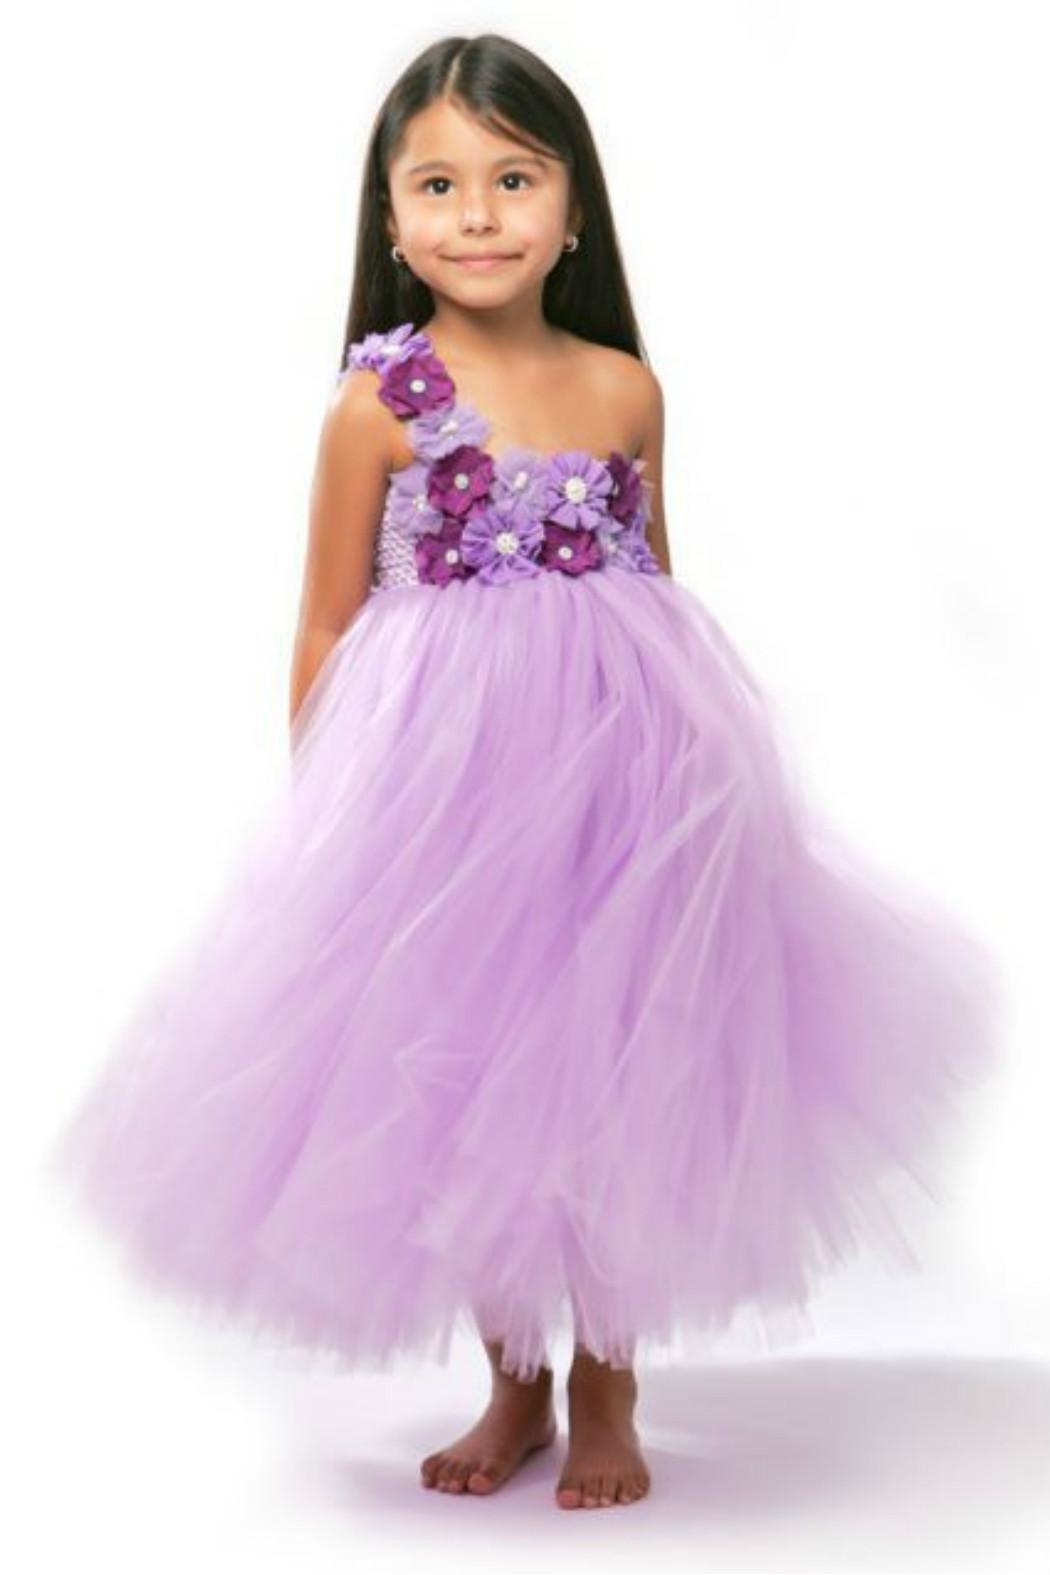 LIL MISS DRESS UP Purple Tutu Dress - Main Image